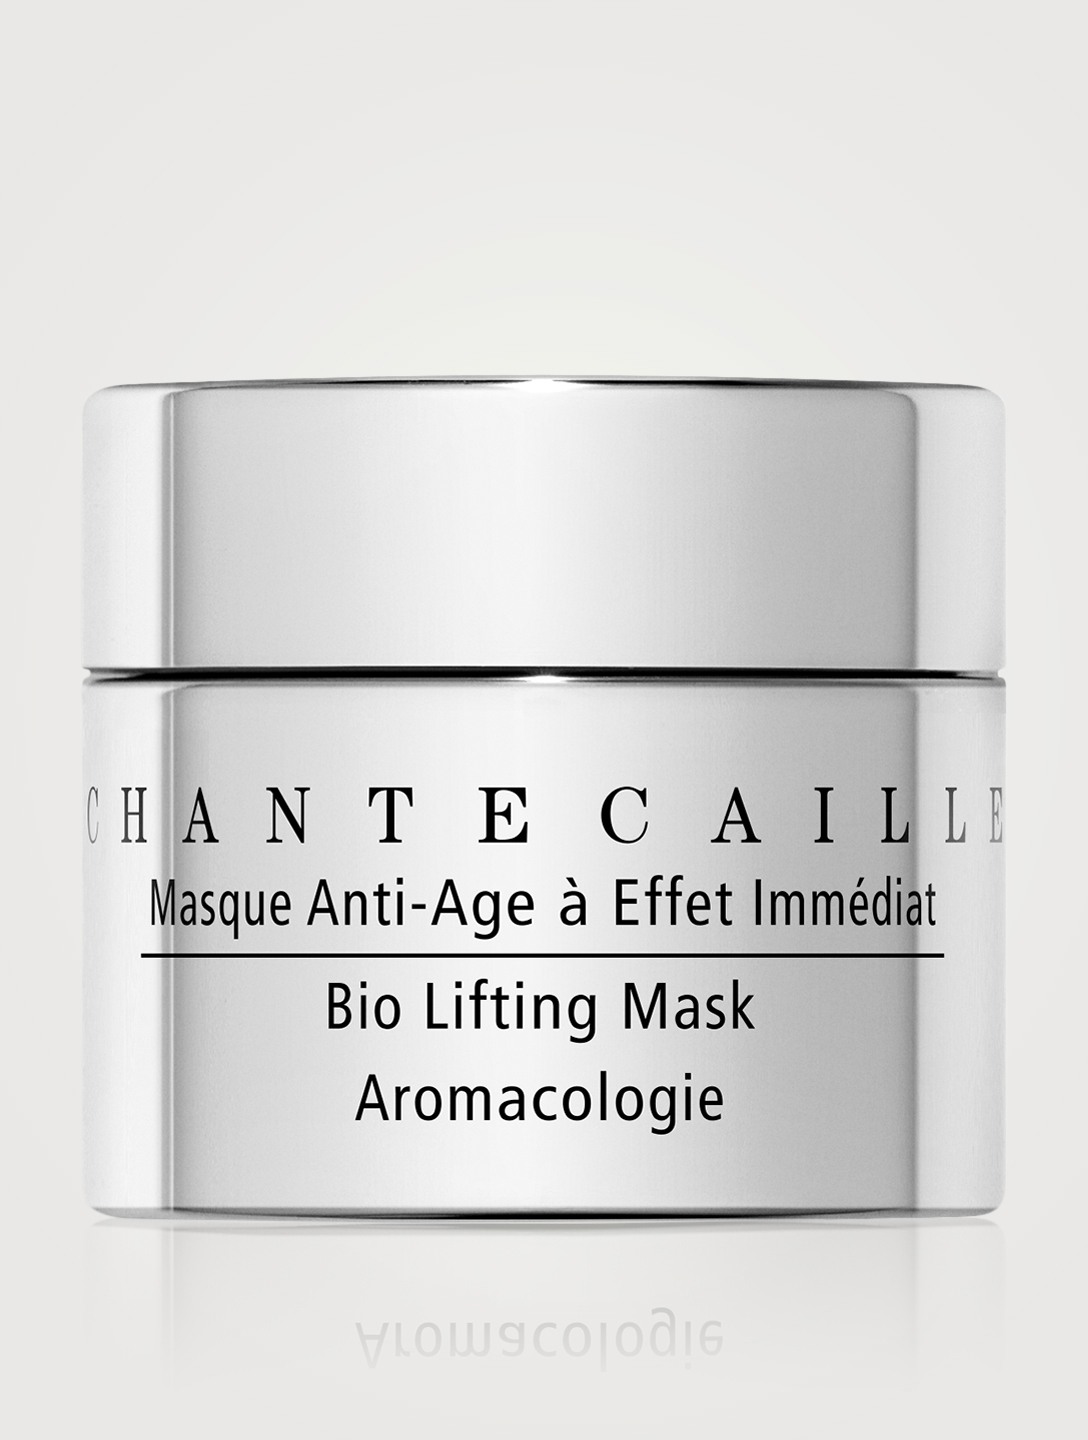 CHANTECAILLE Bio Lifting Mask - Travel Size Beauty